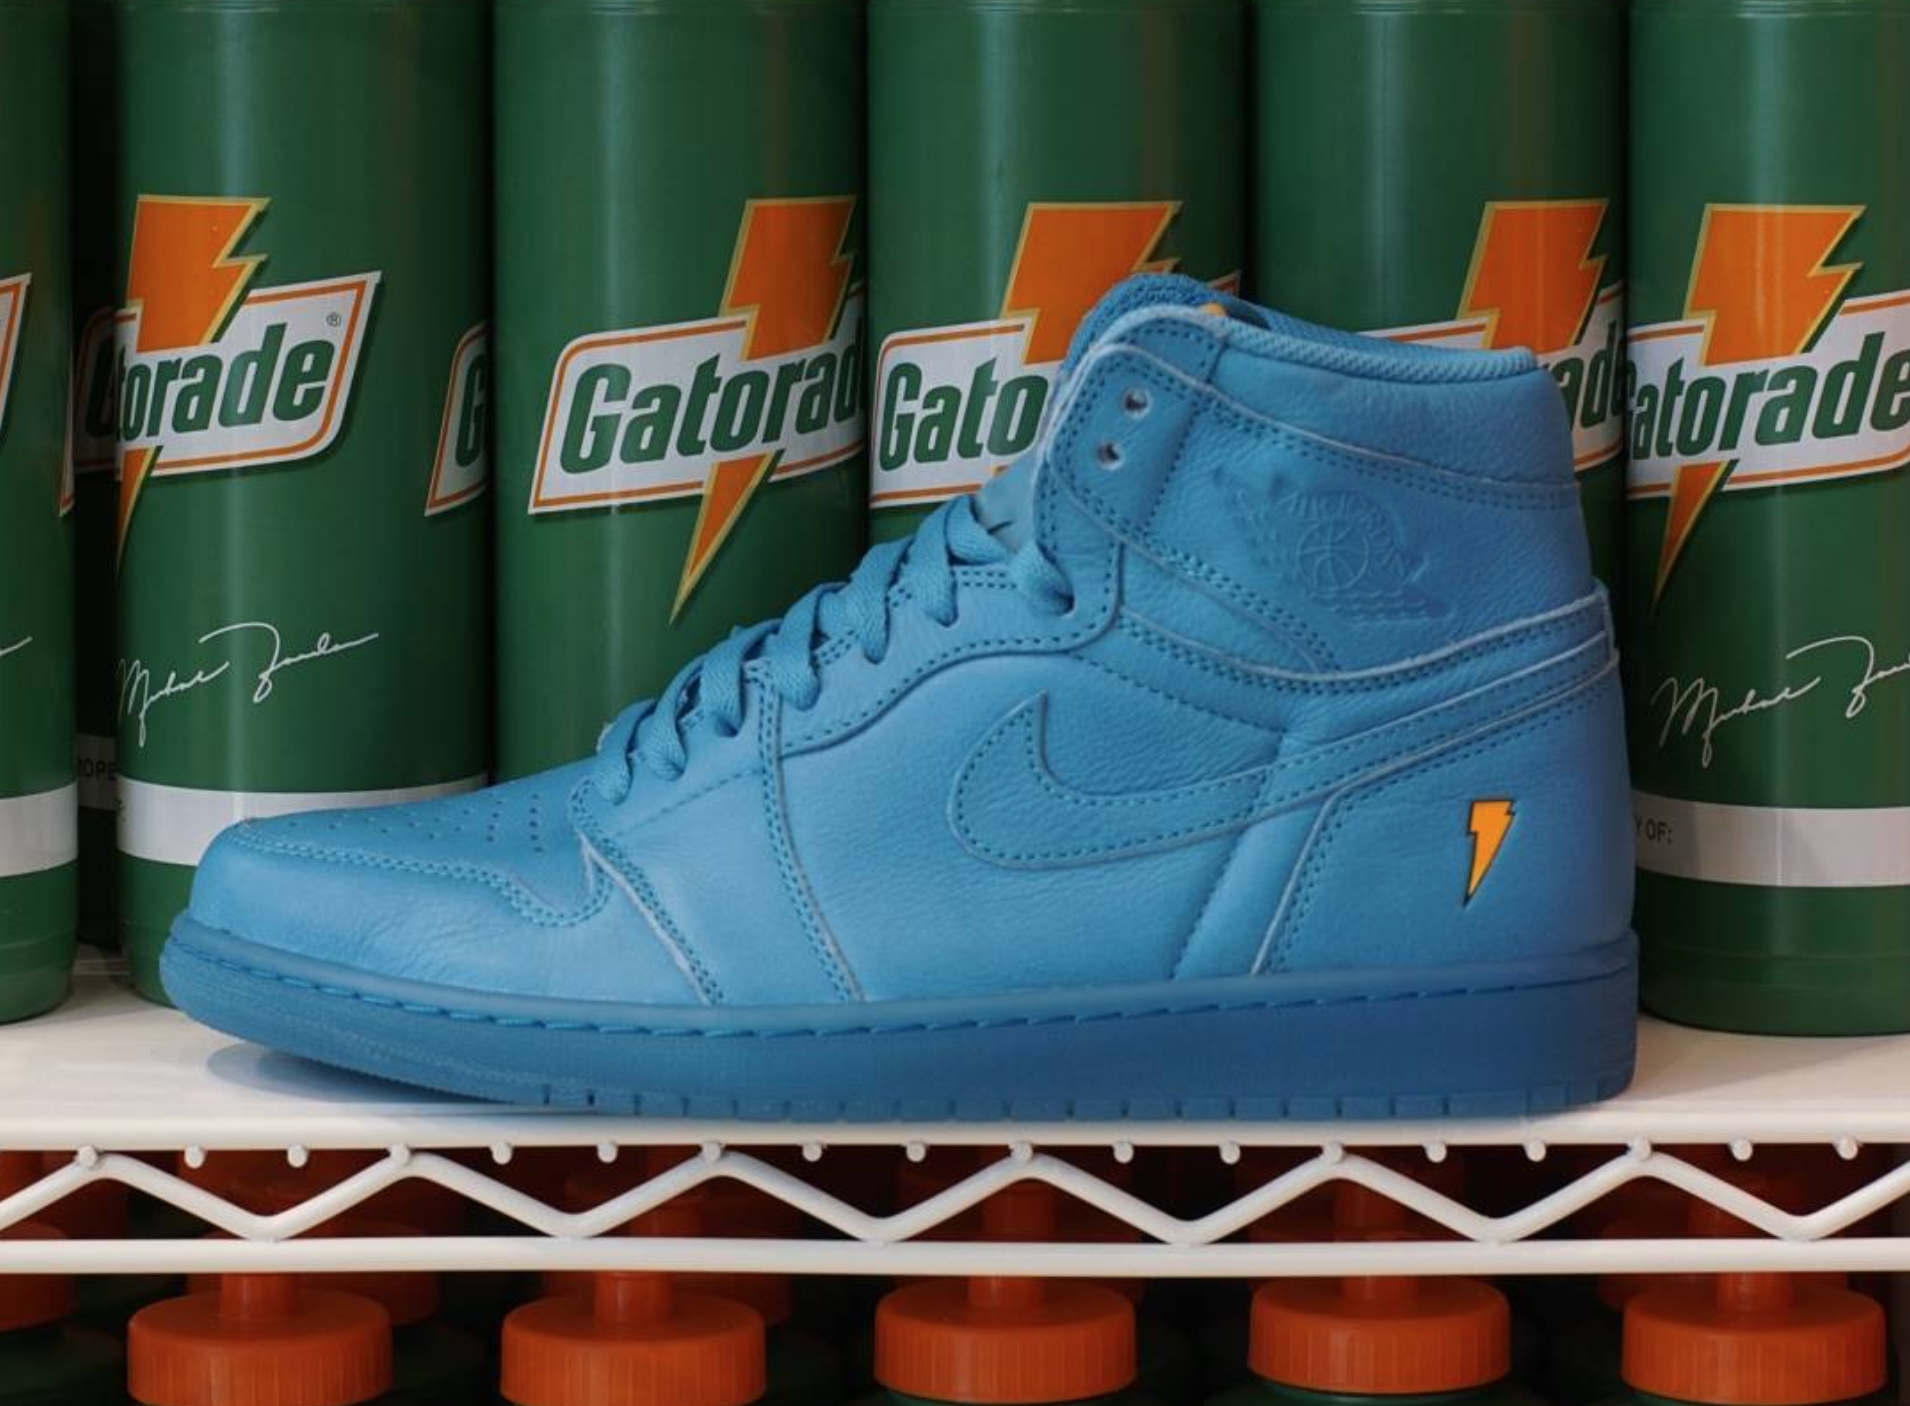 brand new 16f0c 6323b The Gatorade Air Jordan 1 'Like Mike' Pack is Available ...